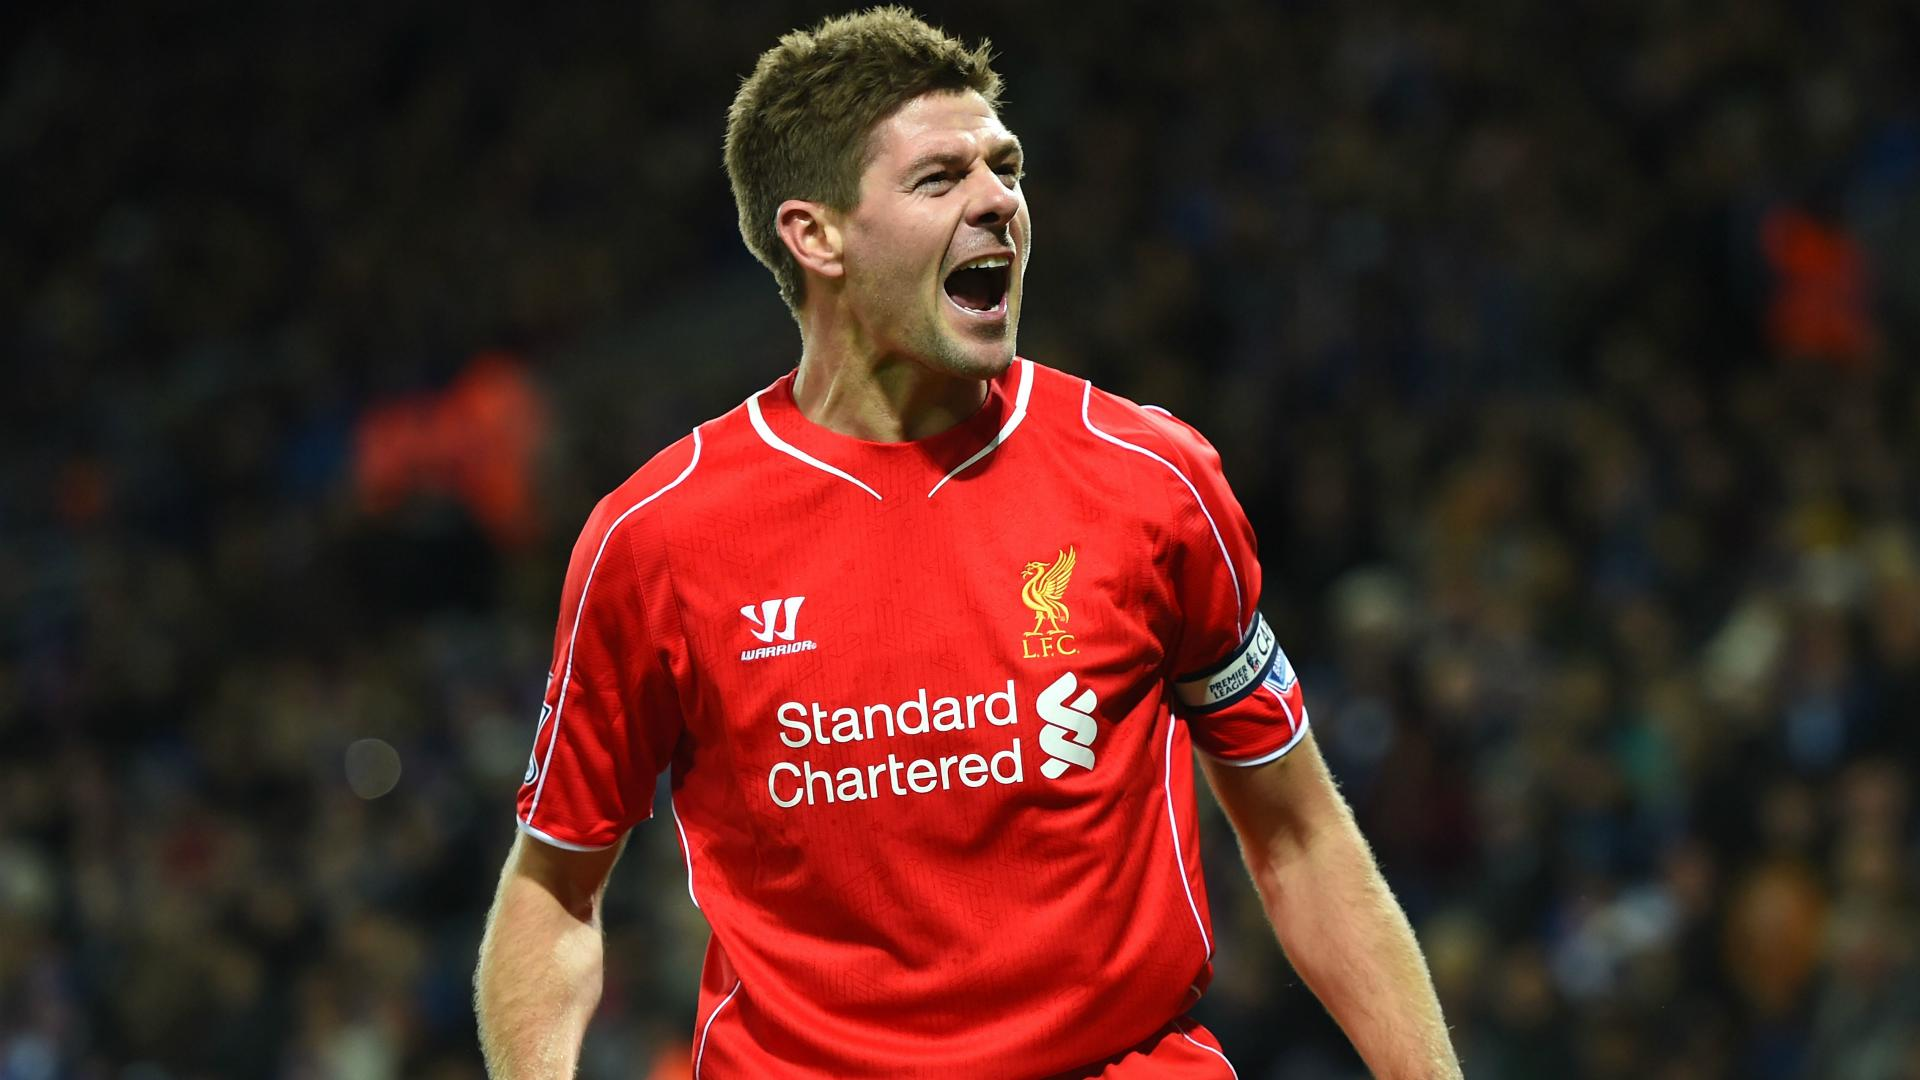 Gerrard to play with Liverpool legends in Sydney